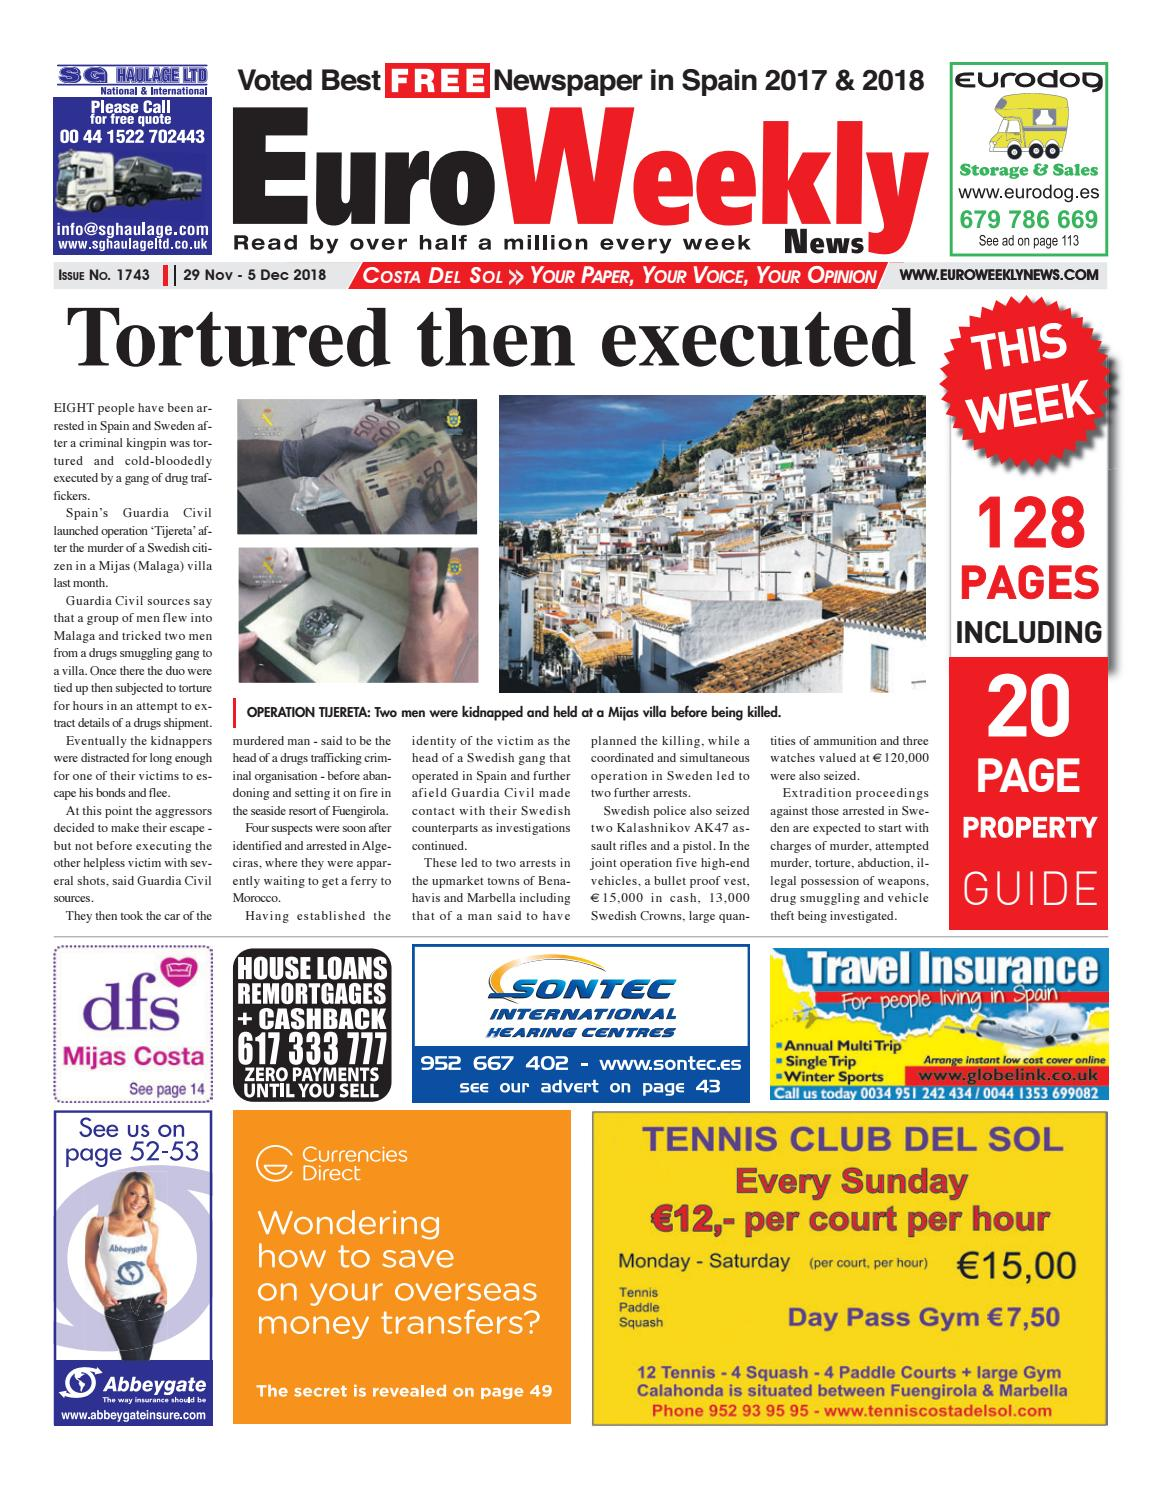 056089b2a6d5 Euro Weekly News - Costa del Sol November - 29 - 5 December 2018 Issue 1743  by Euro Weekly News Media S.A. - issuu